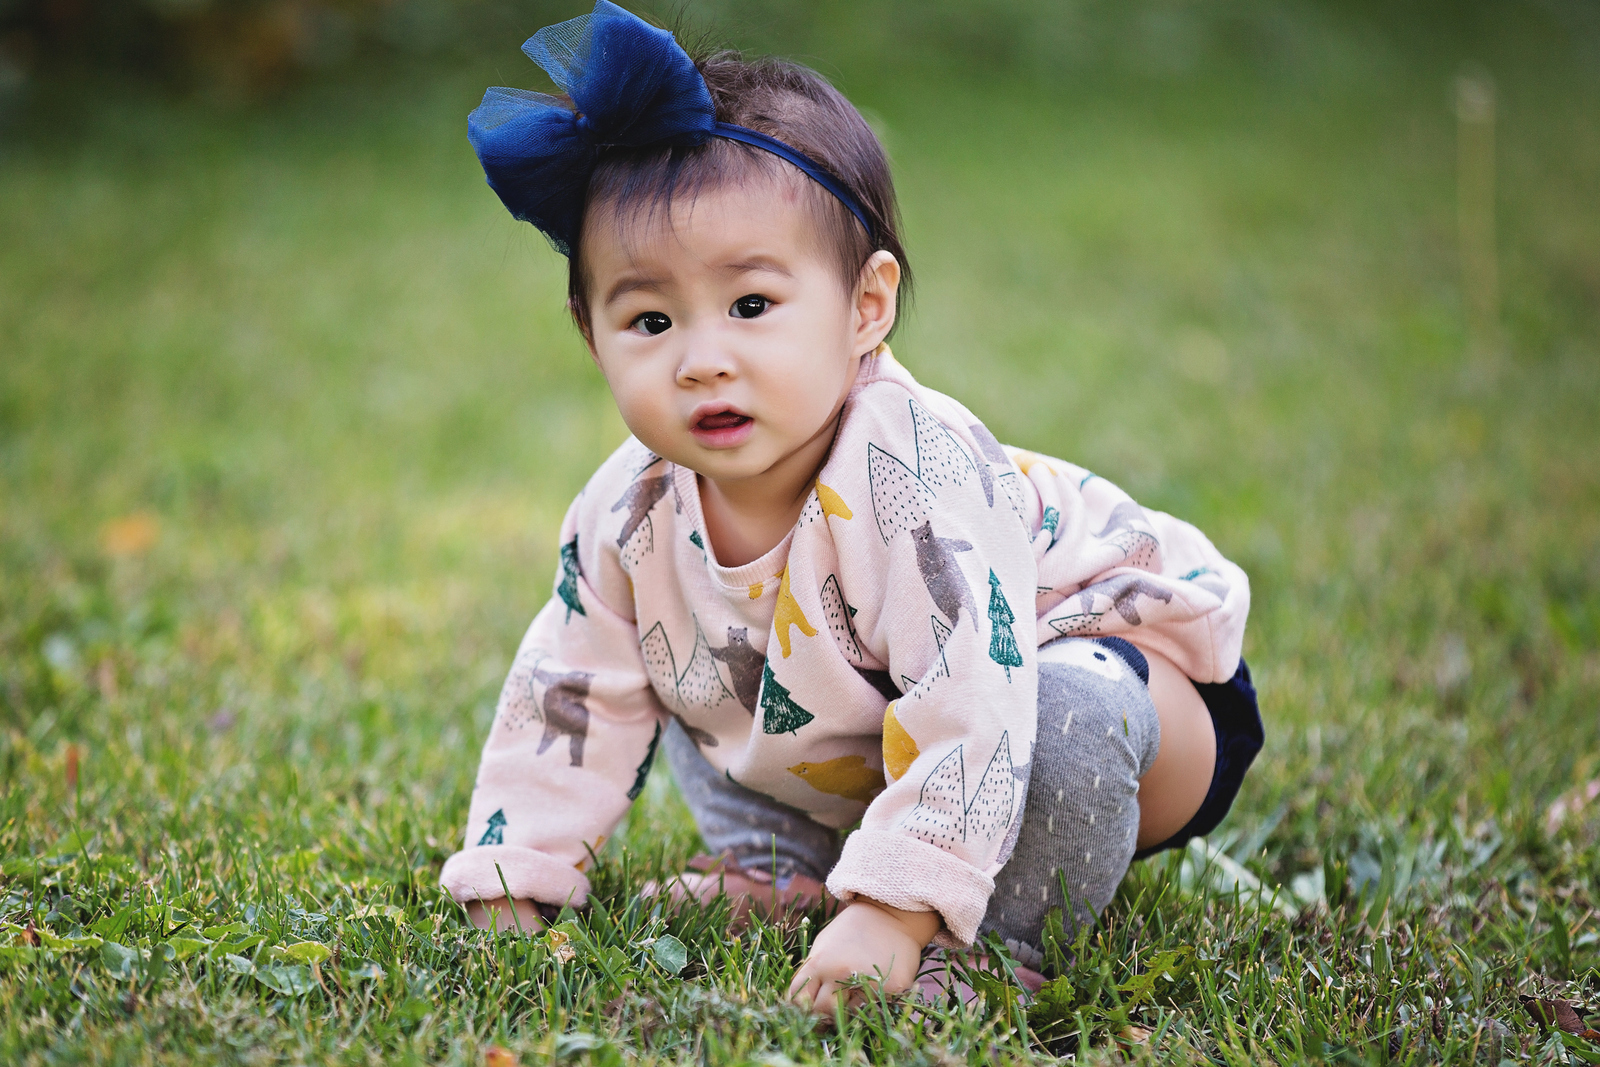 How to dress your baby girl for fall